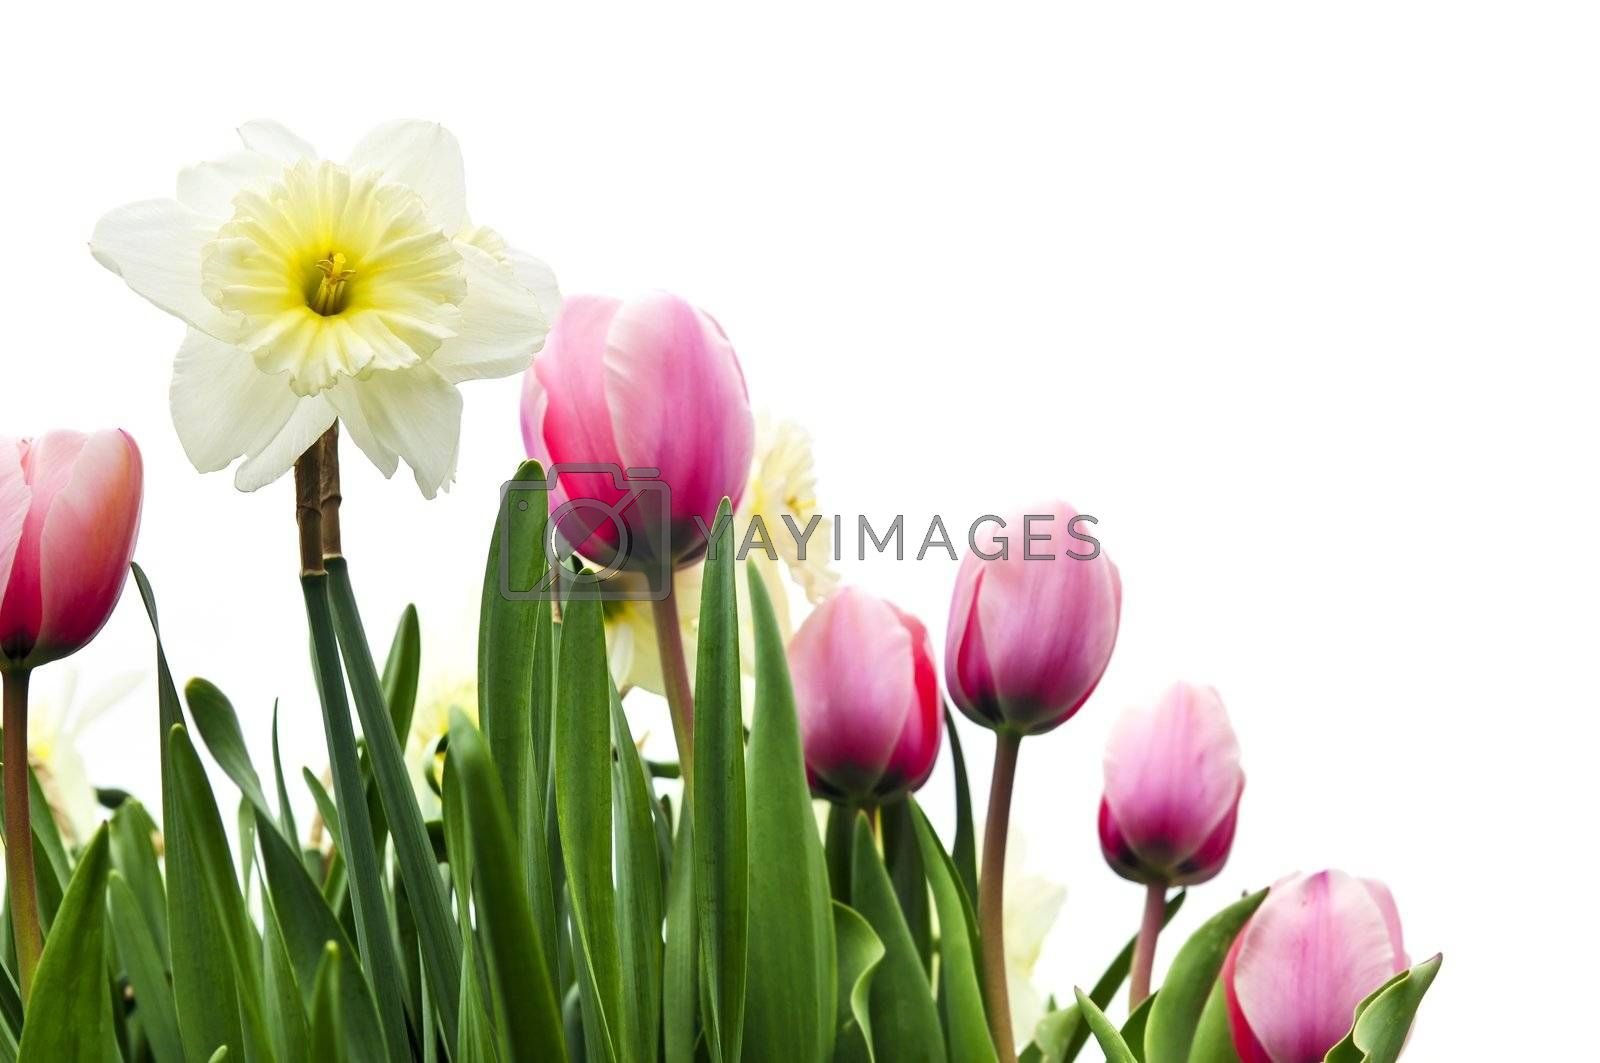 Tulips and daffodils on white background by elenathewise